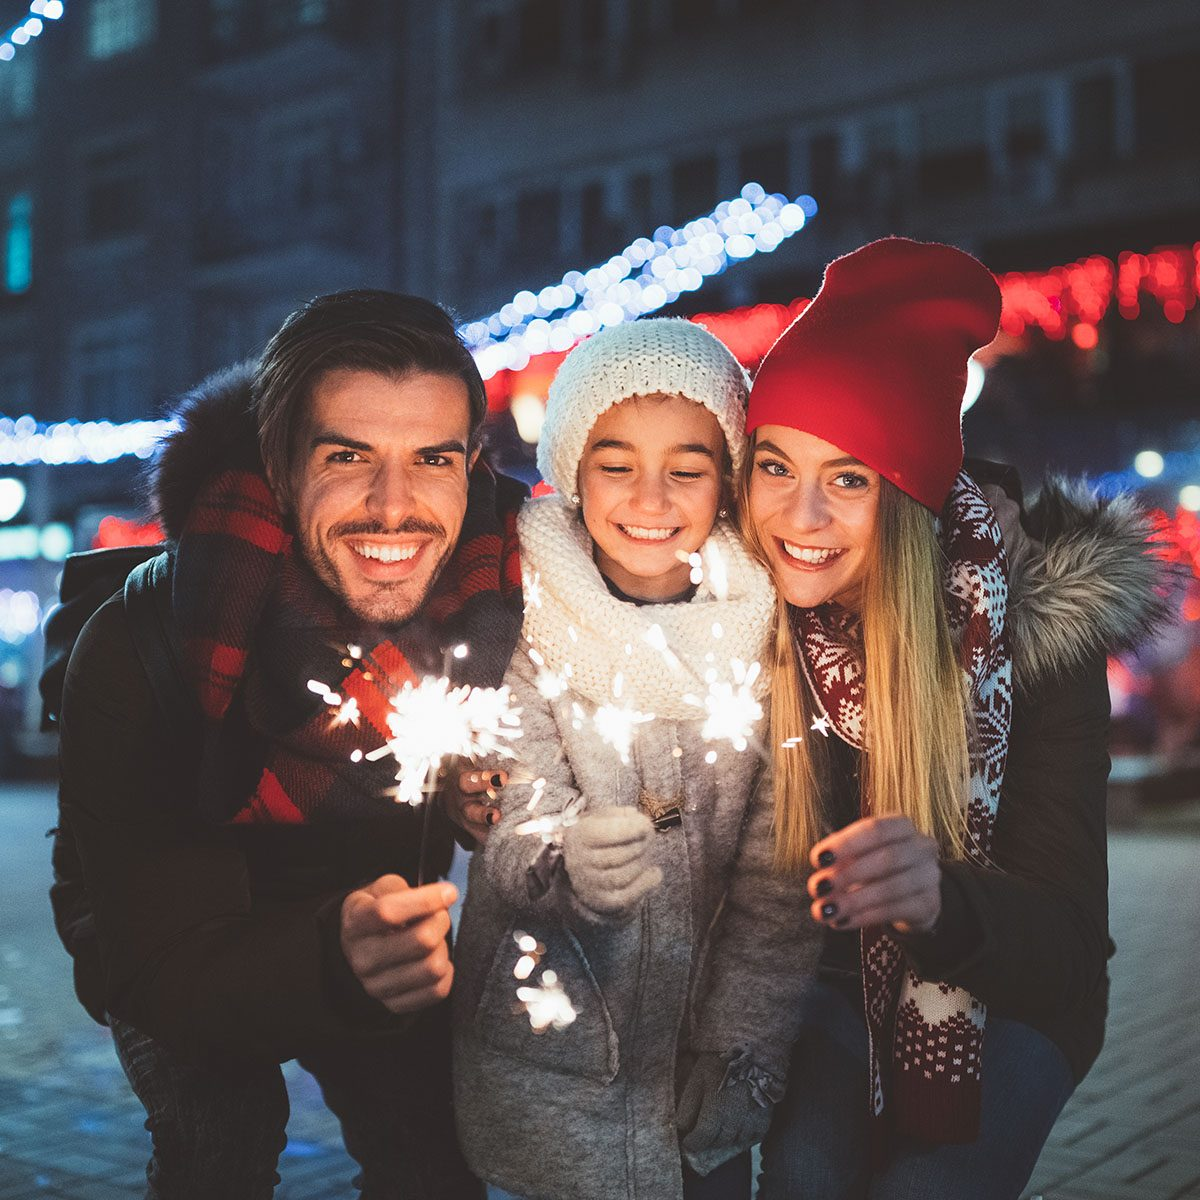 Family with daughter enjoying New Year